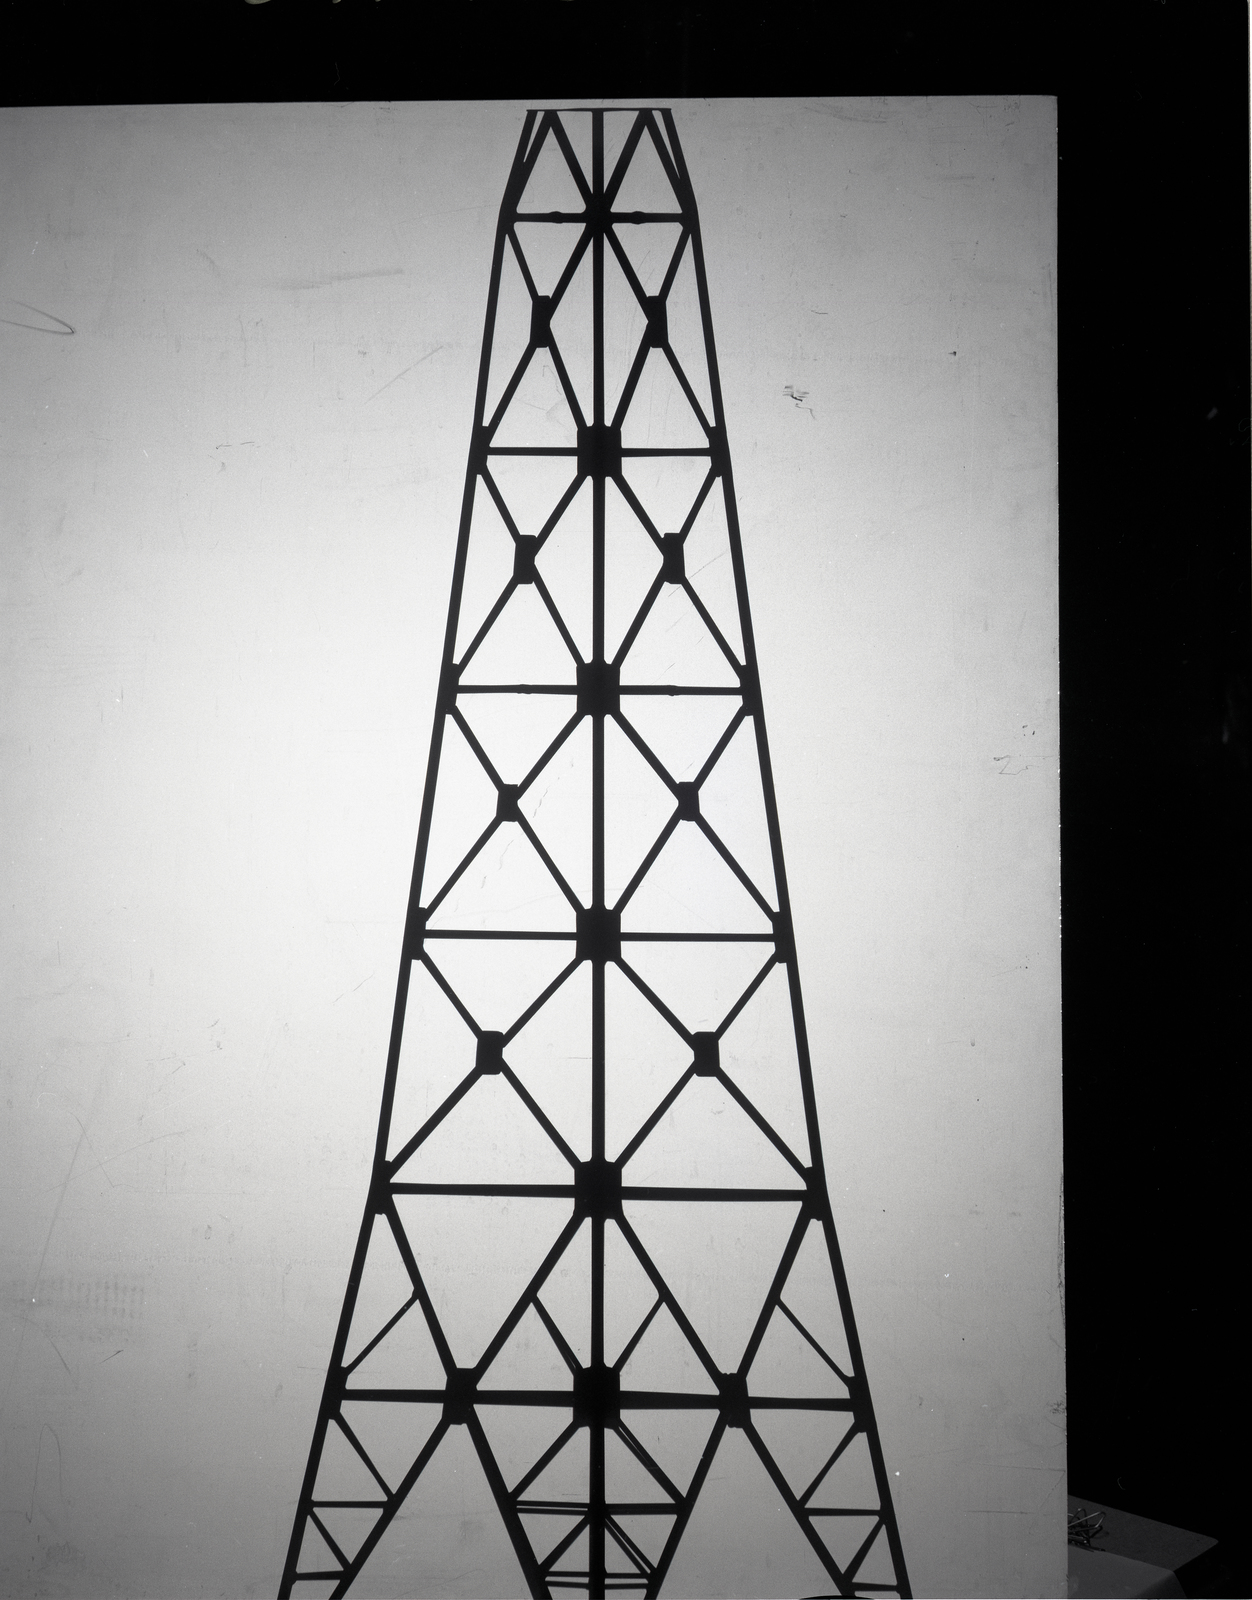 MOD-01 TOWER MODEL - PRELIMINARY DESIGN - SHADOW AT VARIOUS ANGLES